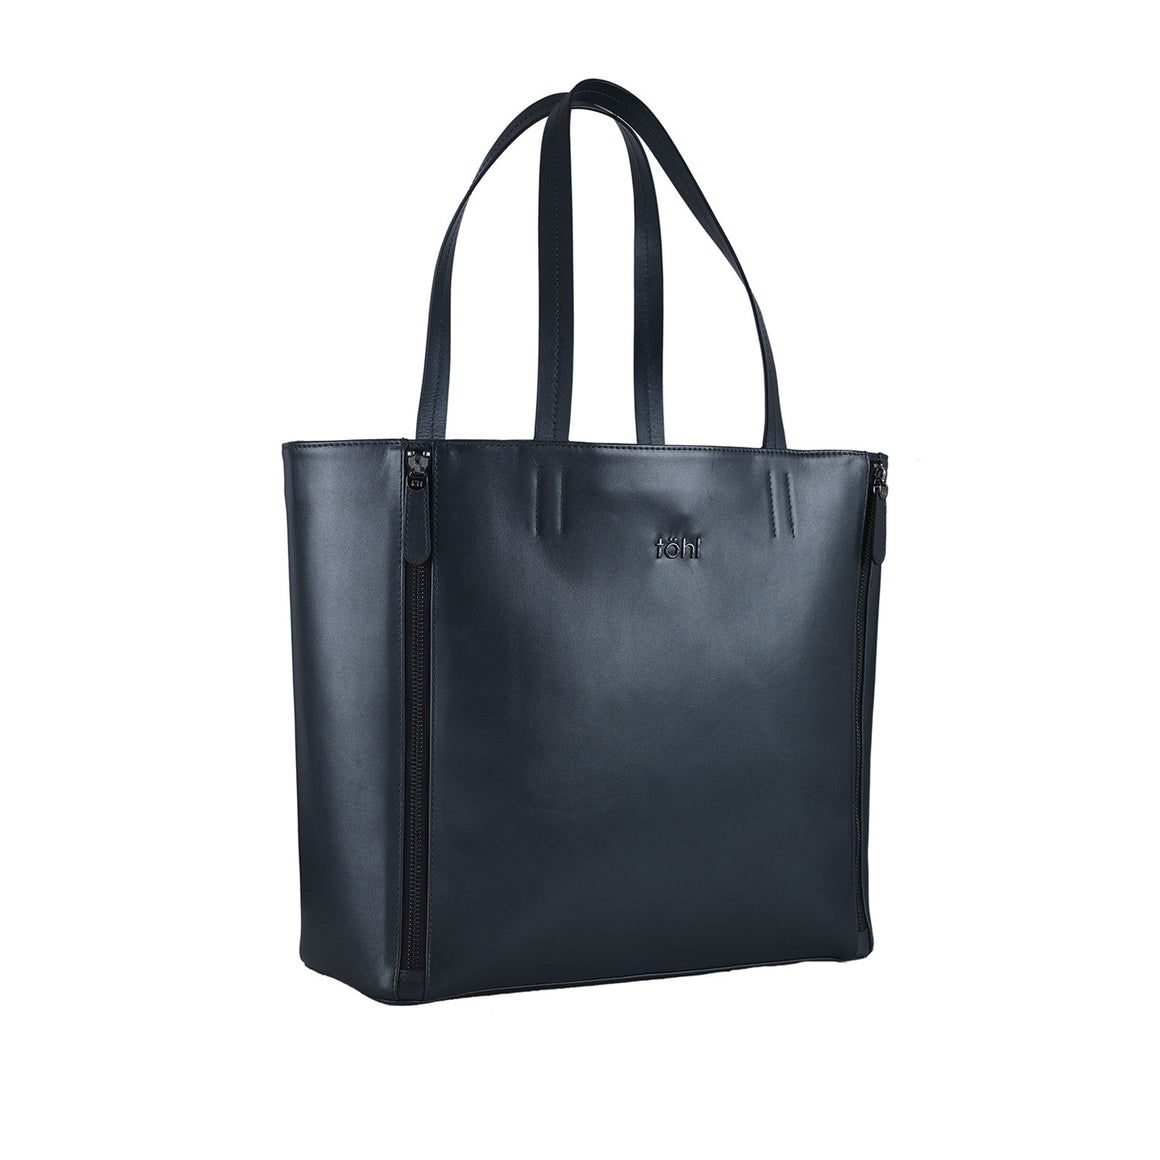 TT 0006 - TOHL RIVINGTON WOMEN'S TOTE BAG - METALLIC CARBON